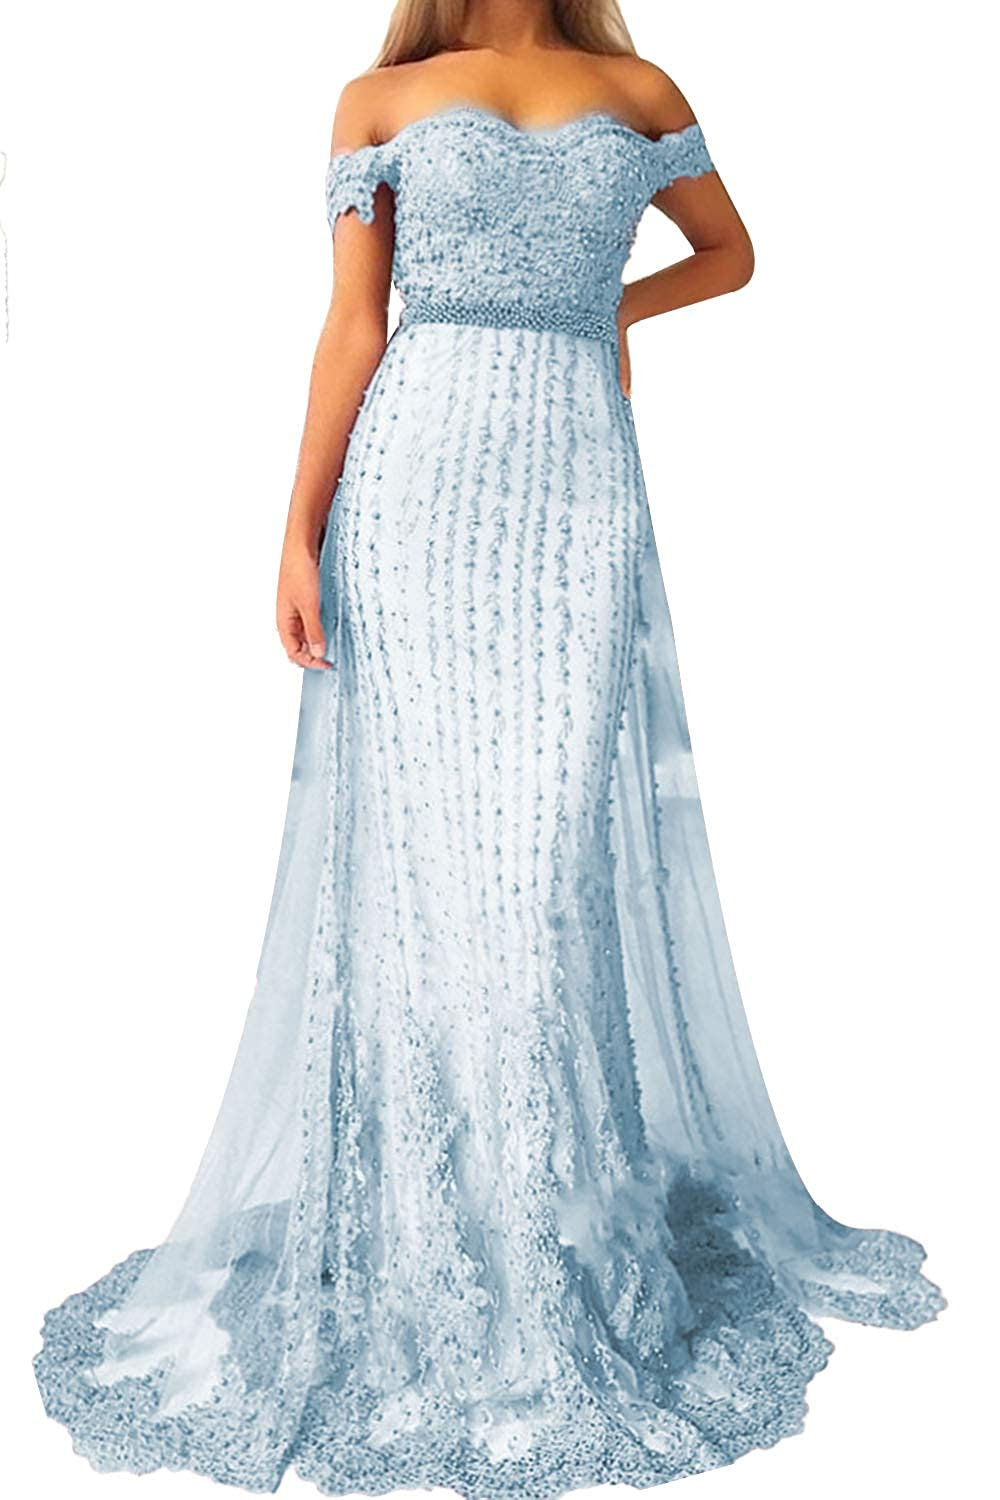 bluee Promworld Women's Off The Shoulder Lace Applique Beaded Bridesmaid Dress Long Prom Dress with Train